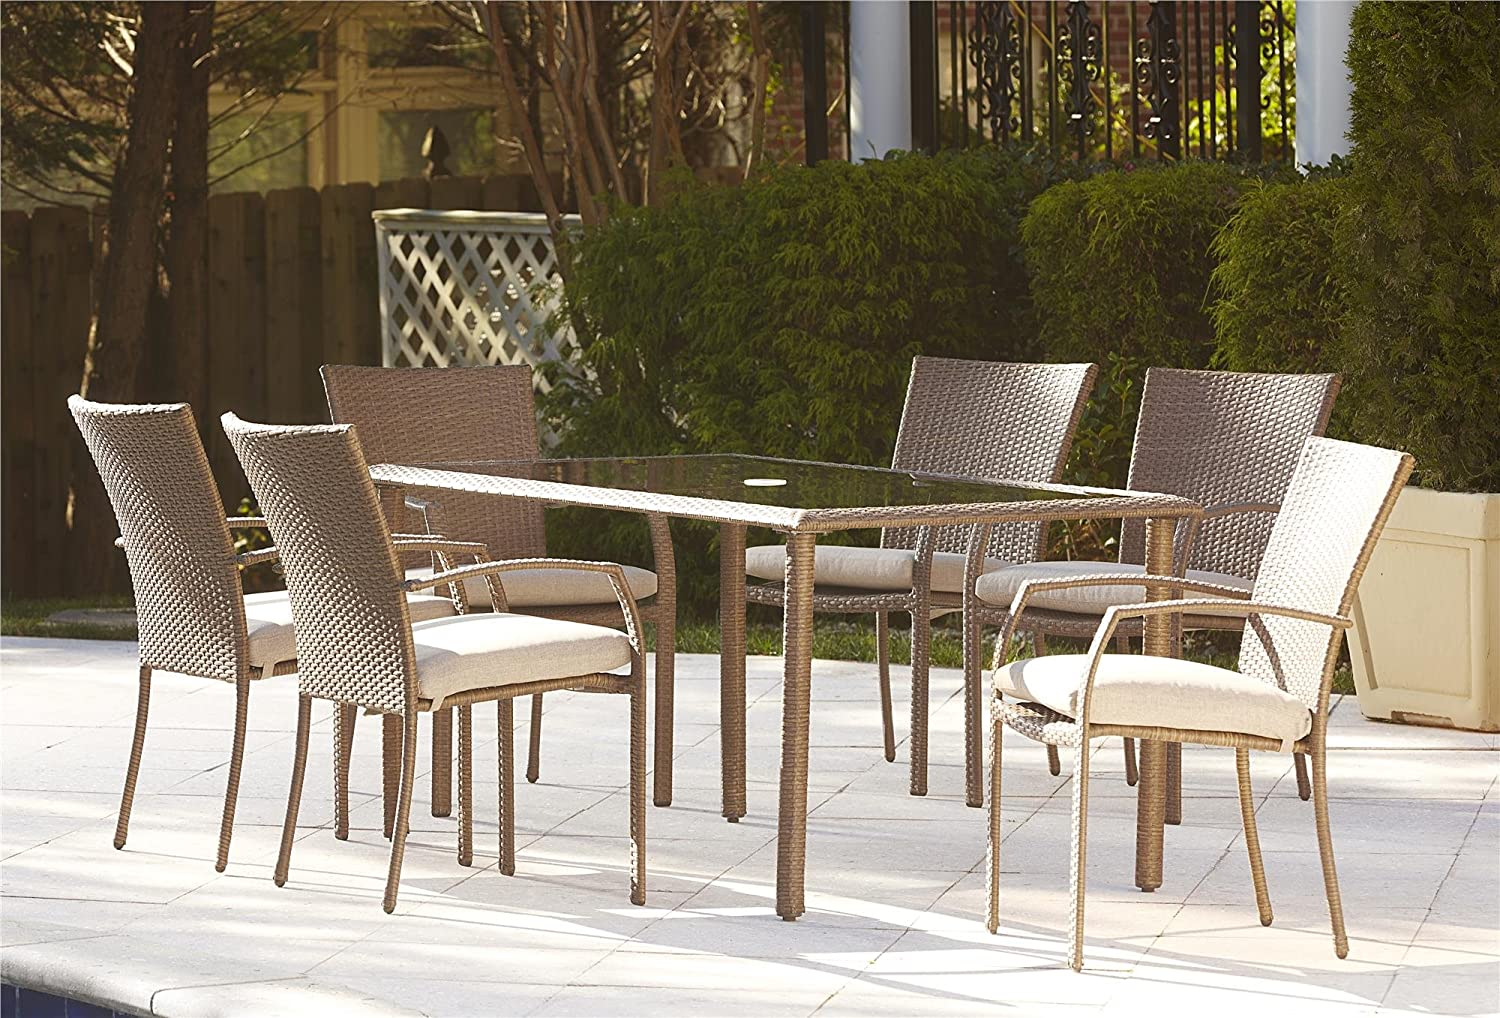 diabelcissokho attachment sets dining furniture minimalist set patio